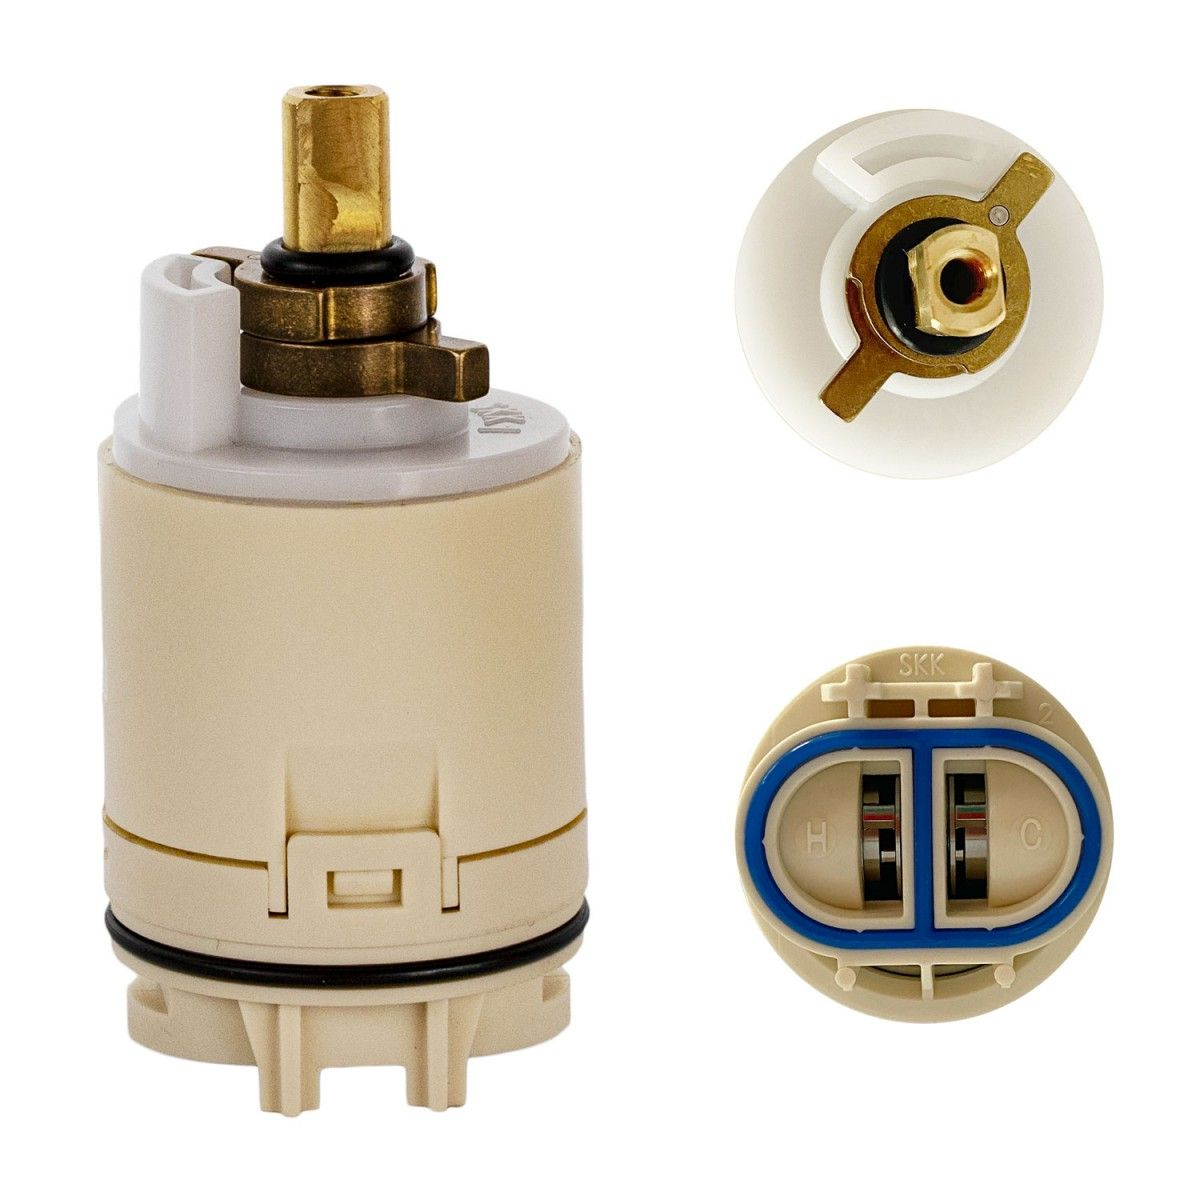 Flowrite Rp70538 Replacement Cartridge For Peerless Tub And Shower Pressure Balance Valve Faucet R In 2020 Faucet Repair Shower Tub Shower Repair